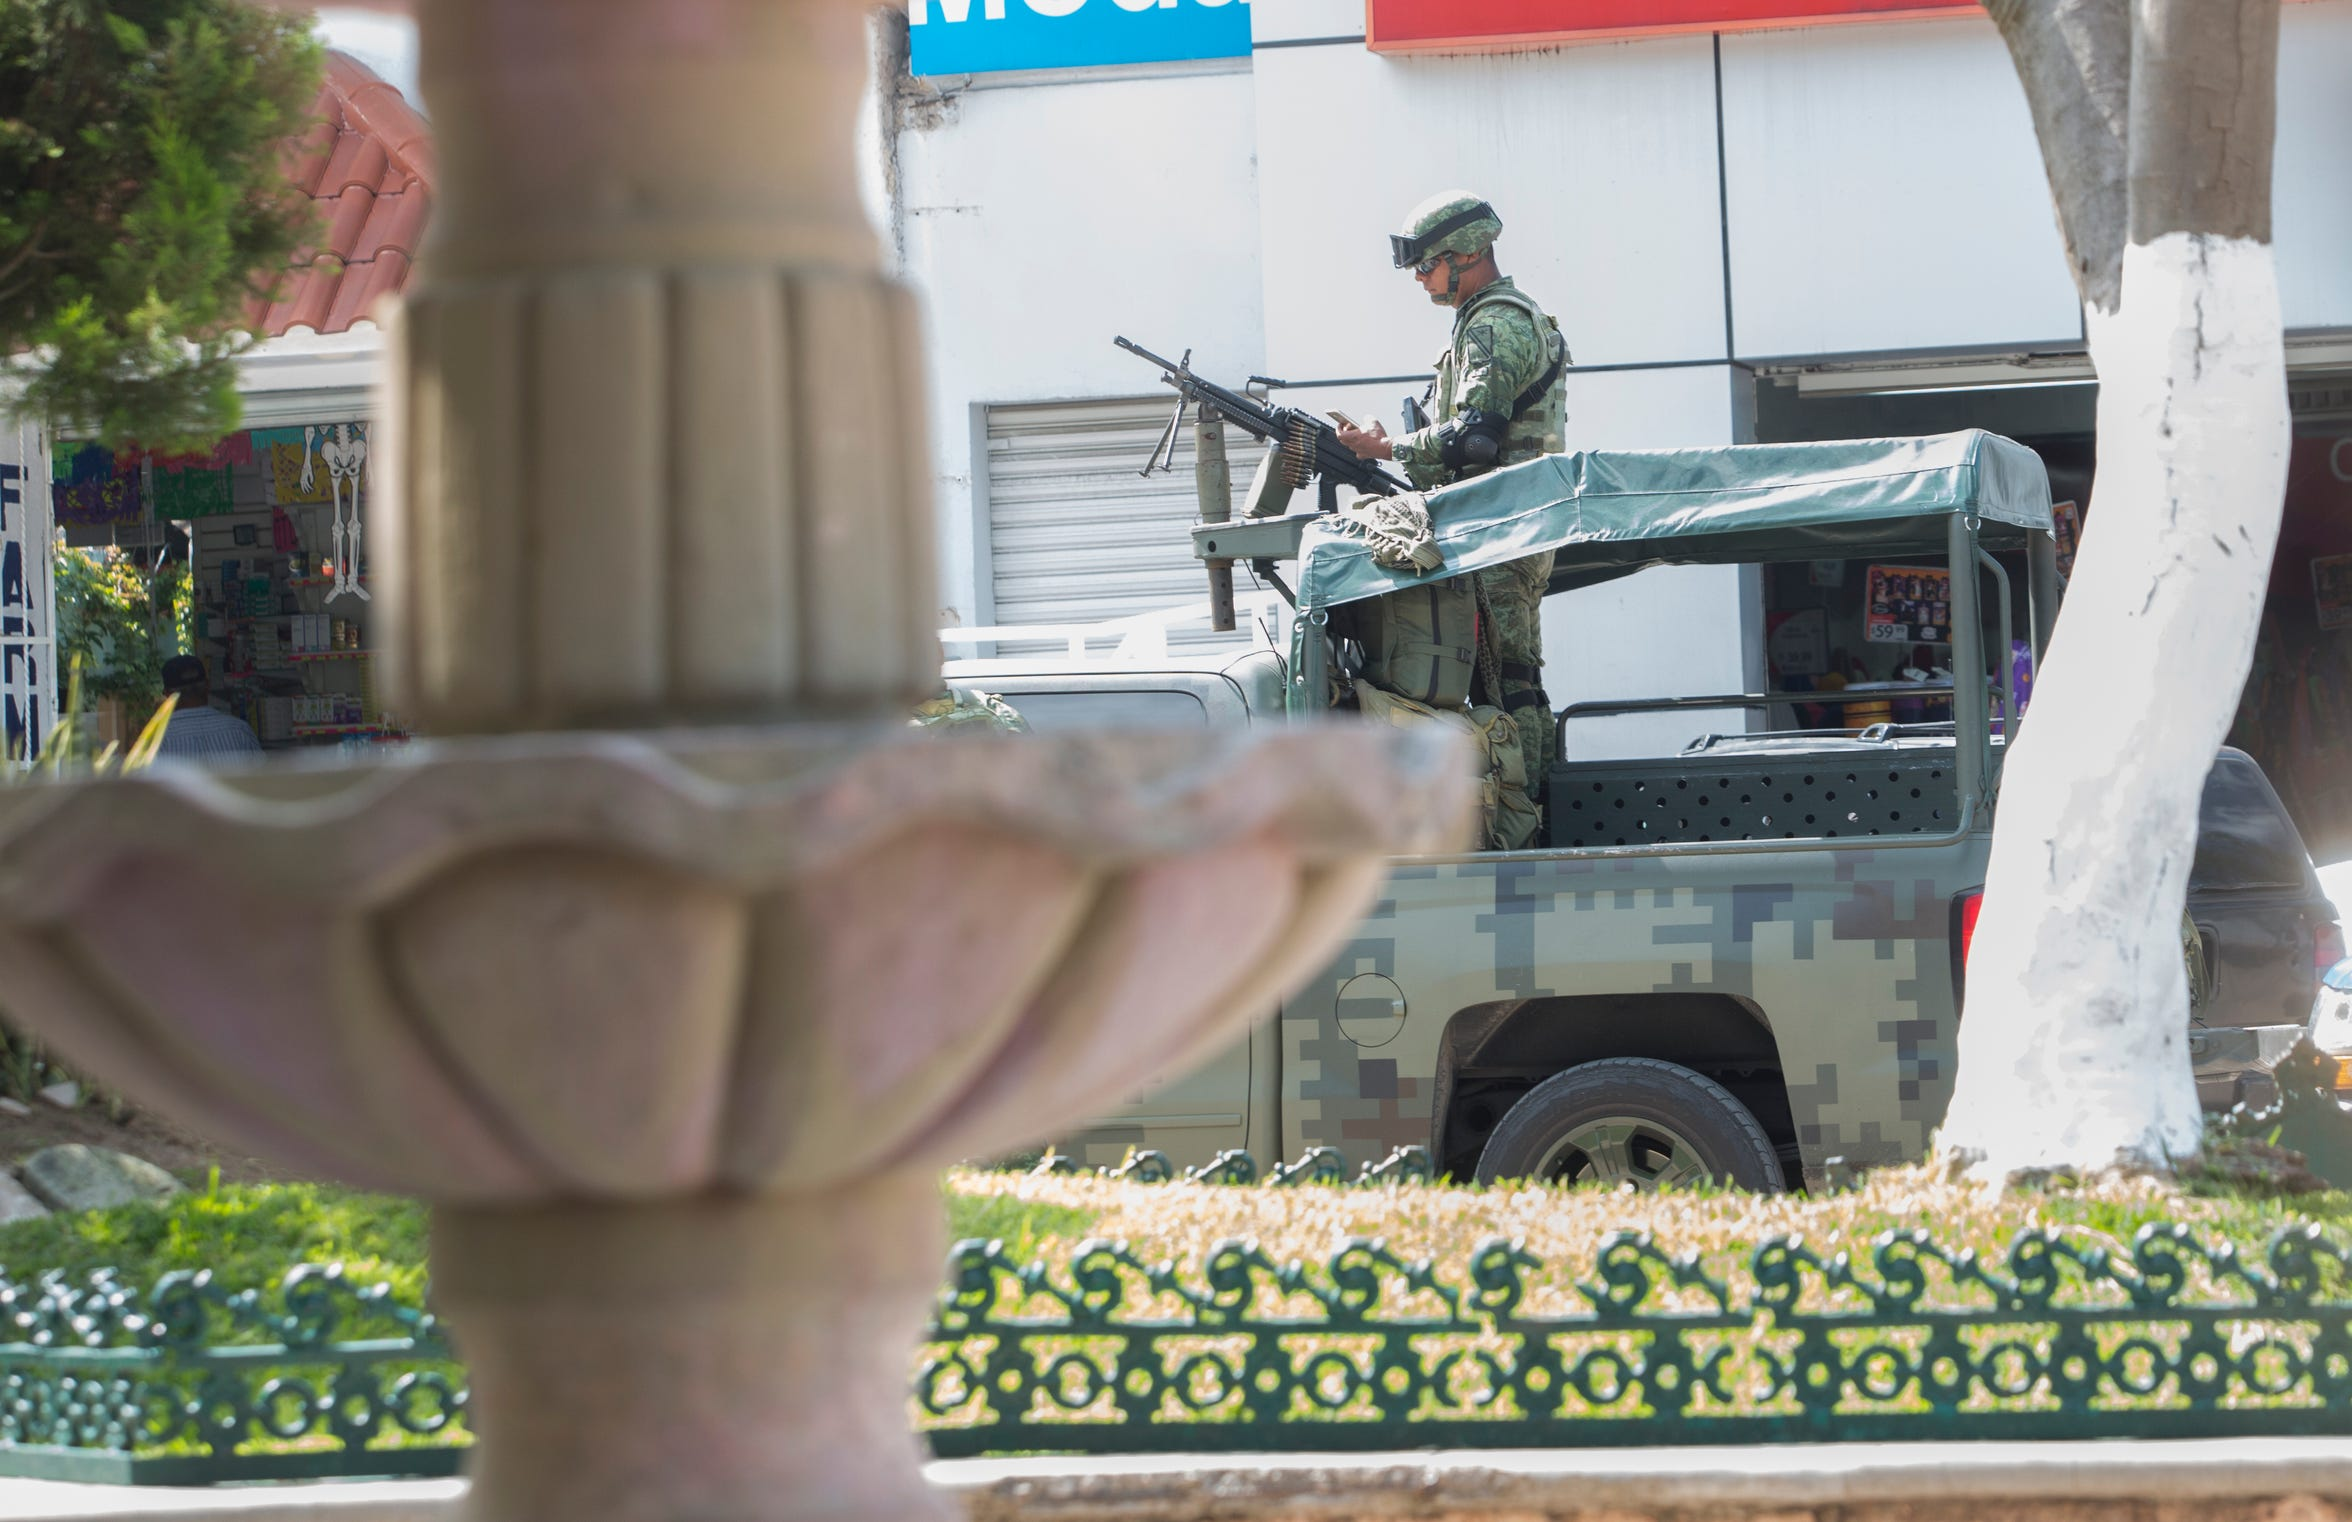 Members of the military are stationed along Chilapa's main square. In 2017, the county of Chilapa had the second-highest homicide rate in Mexico, according to a Mexico City-based advocacy group.